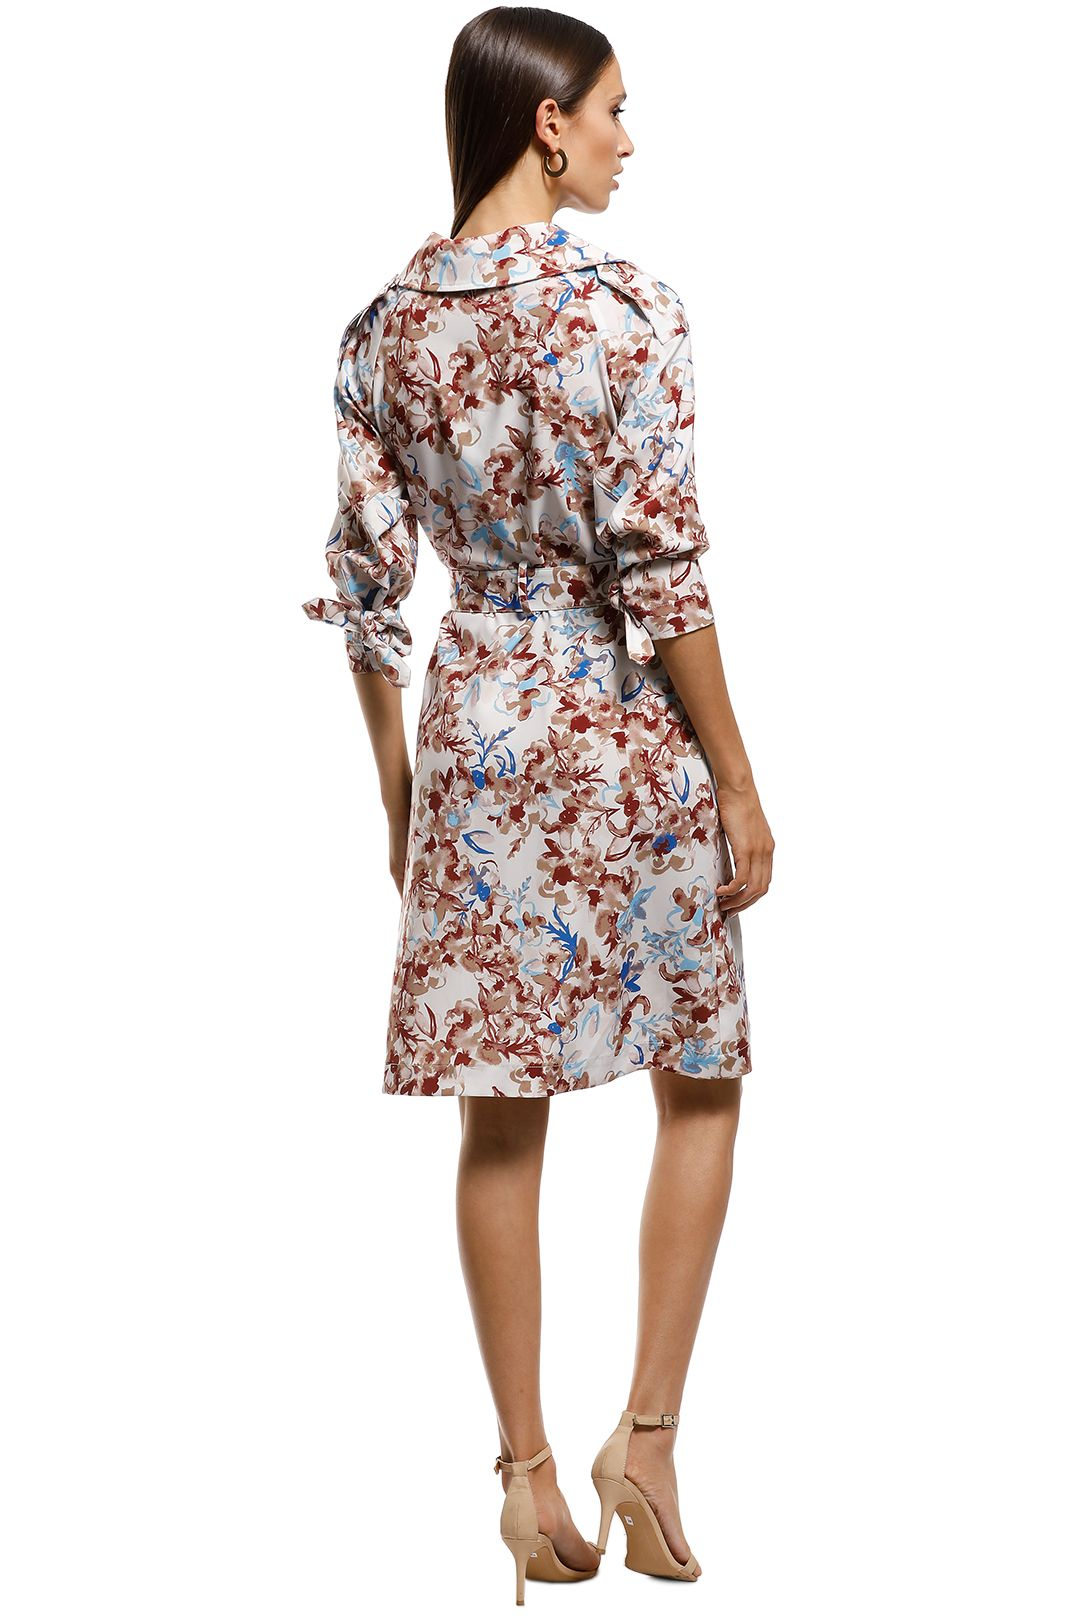 Scanlan Theodore - Belita Trench Dress - Multi - Back